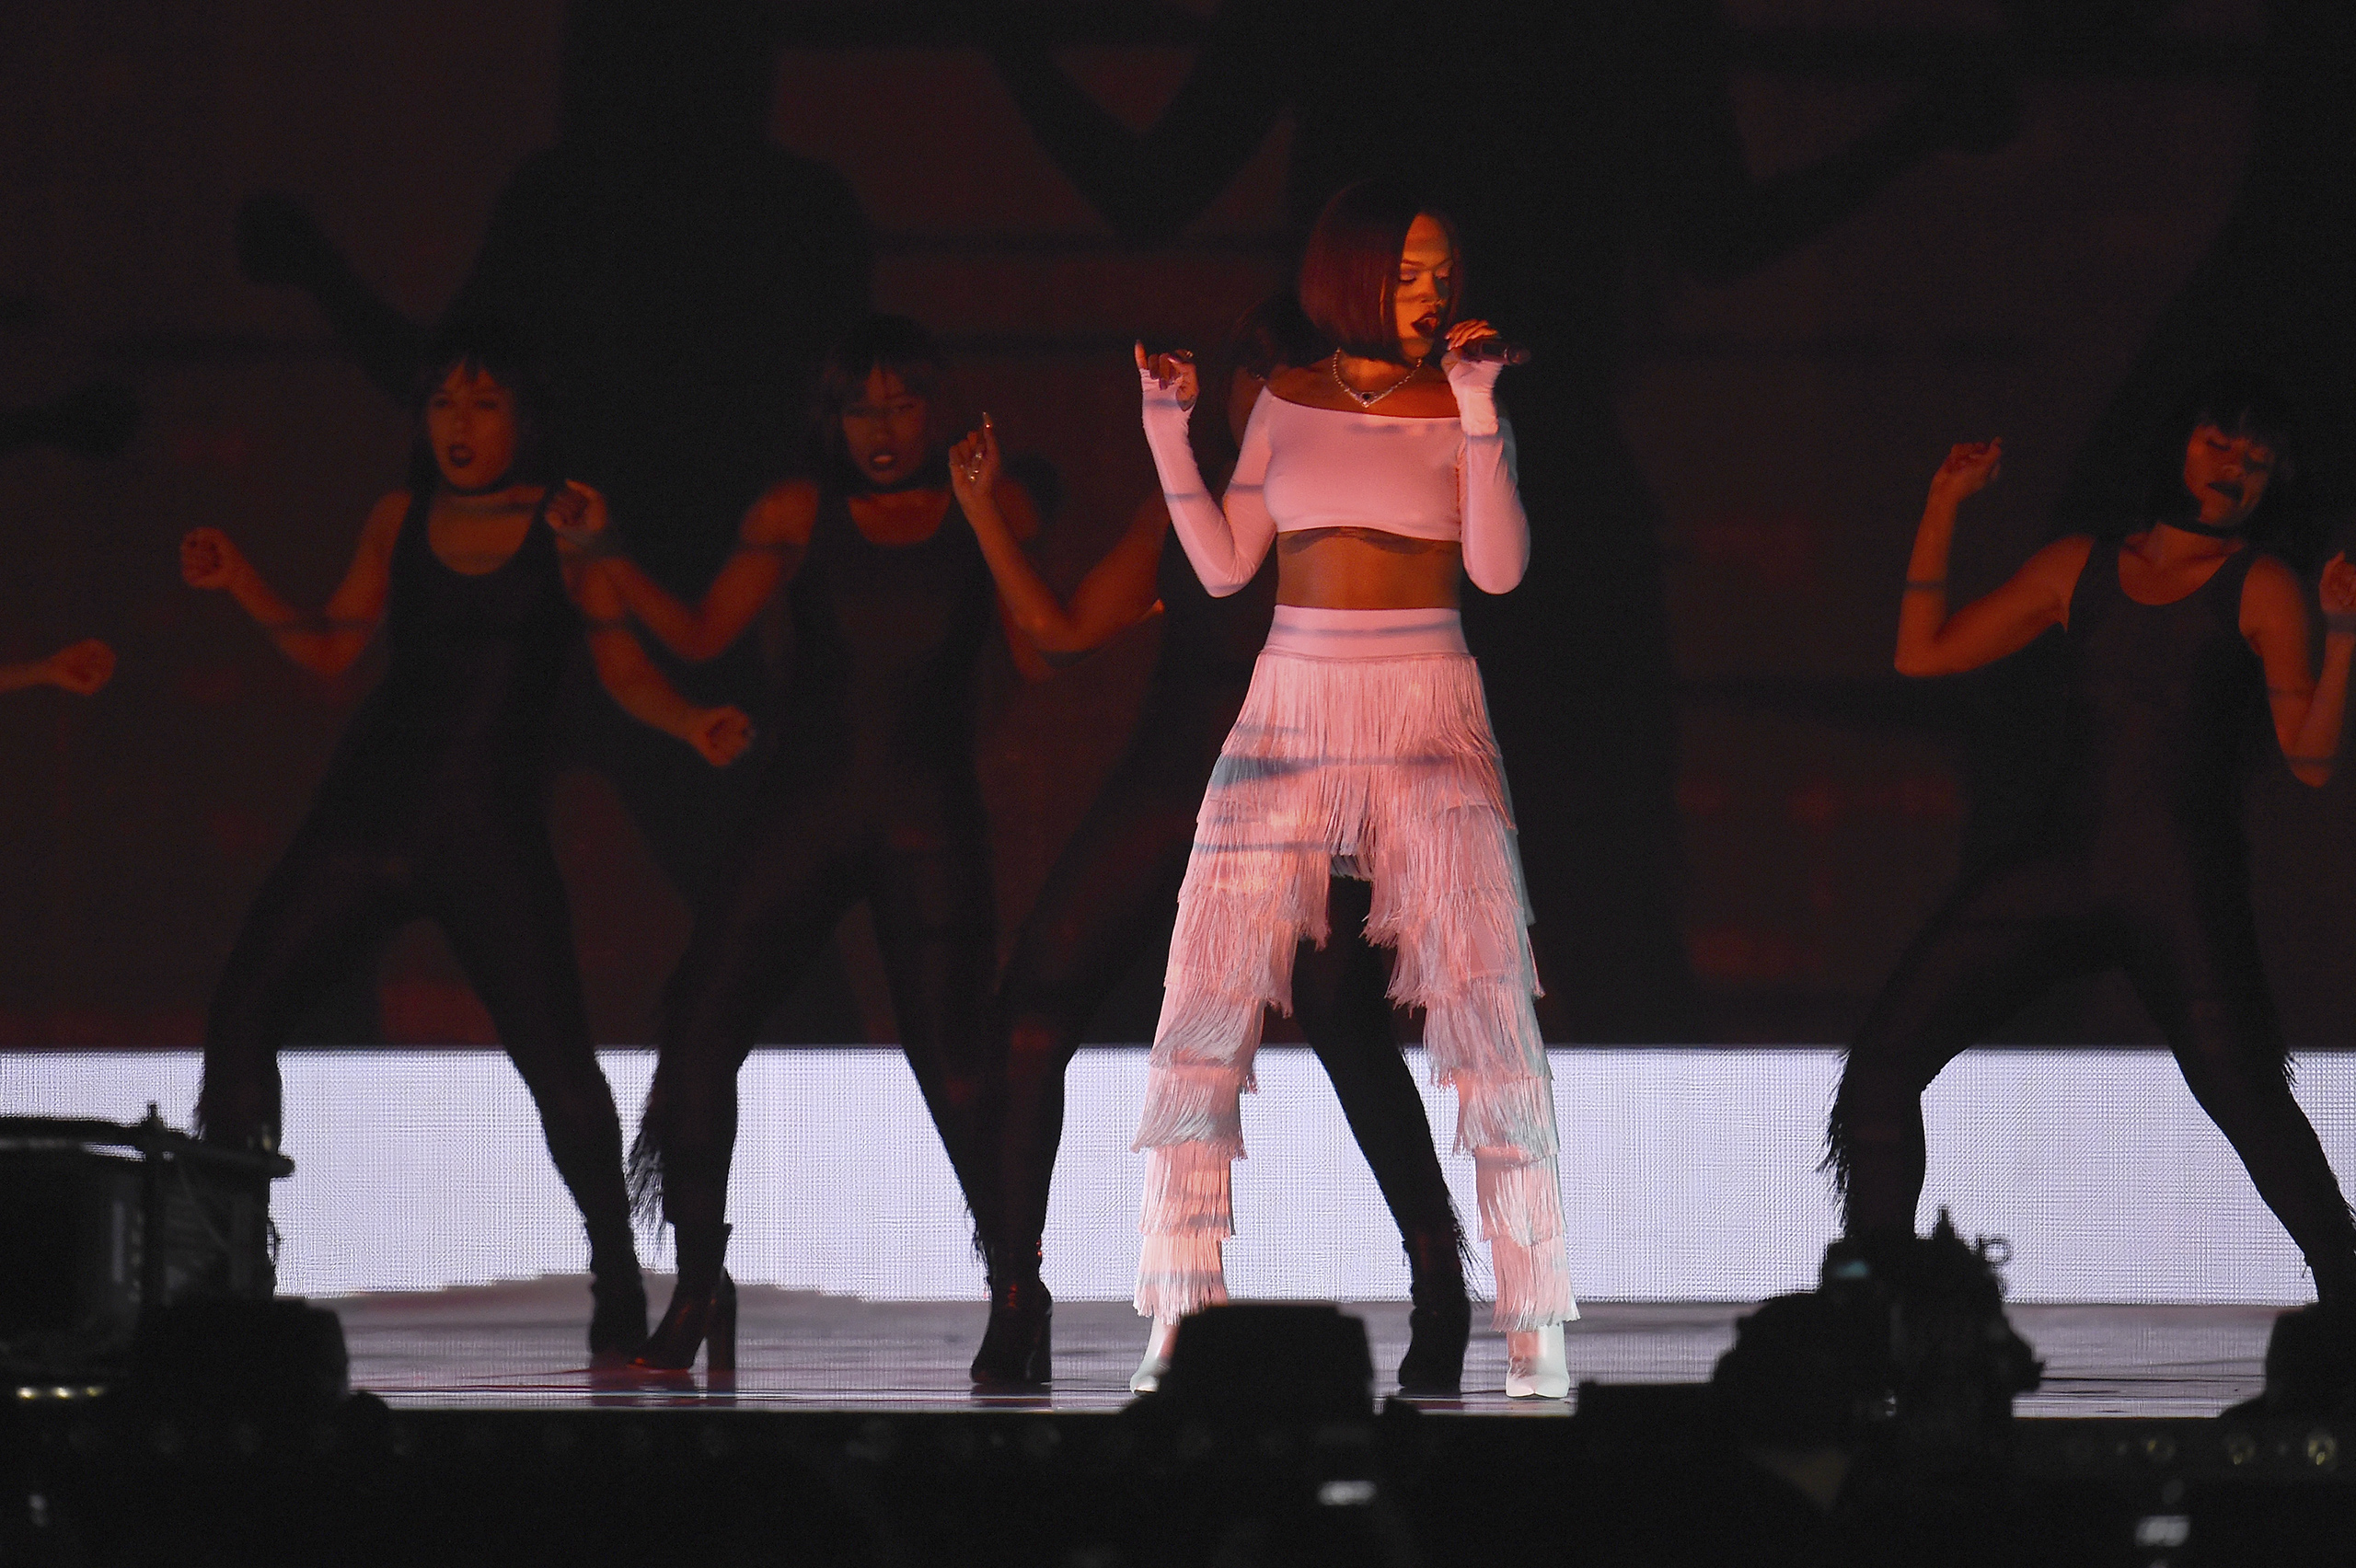 Rihanna performs onstage at the BRIT Awards at The O2 Arena in London, Feb. 24, 2016.